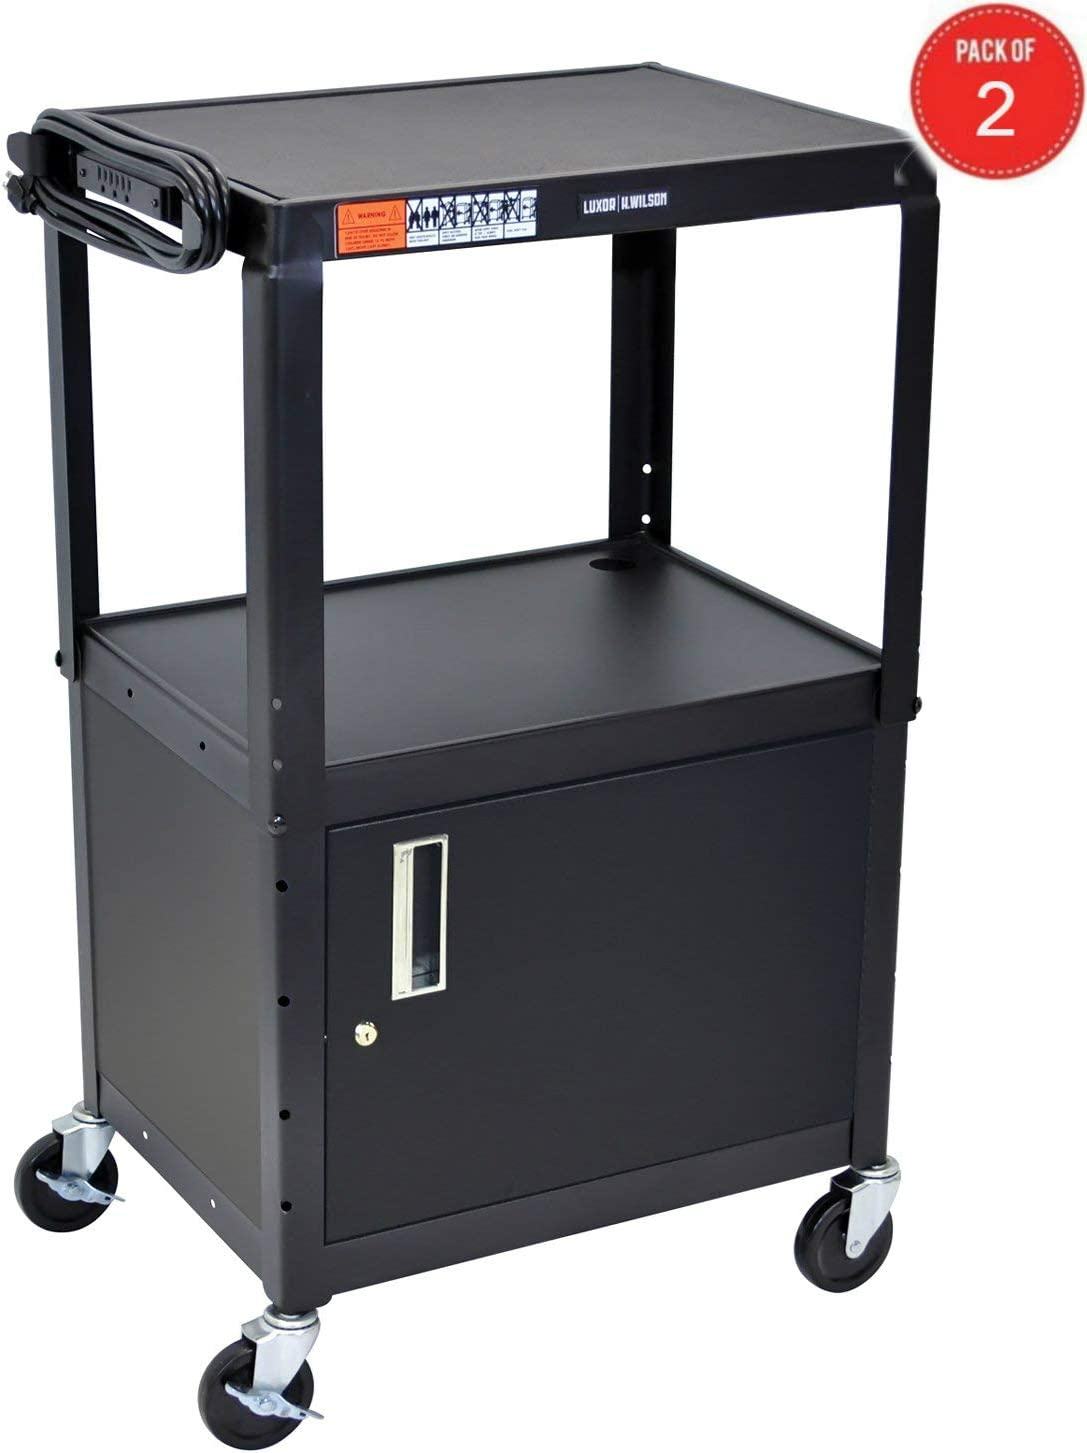 Luxor Multipurpose Adjustable Height Steel A V Utility Cart with Cabinet – Black